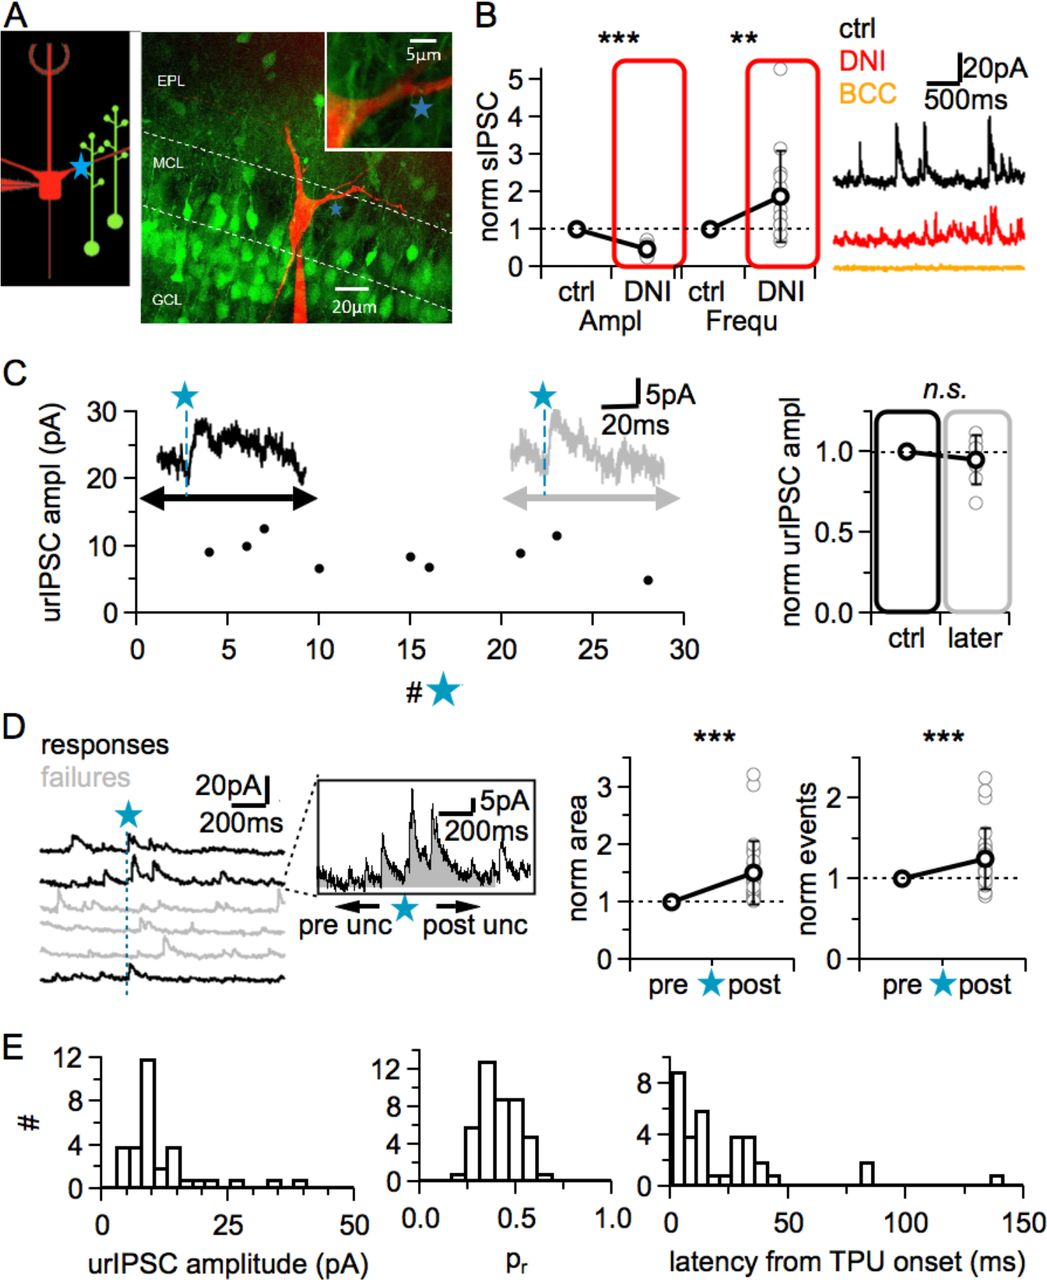 Local reciprocal release of GABA from dendritic spines of olfactory